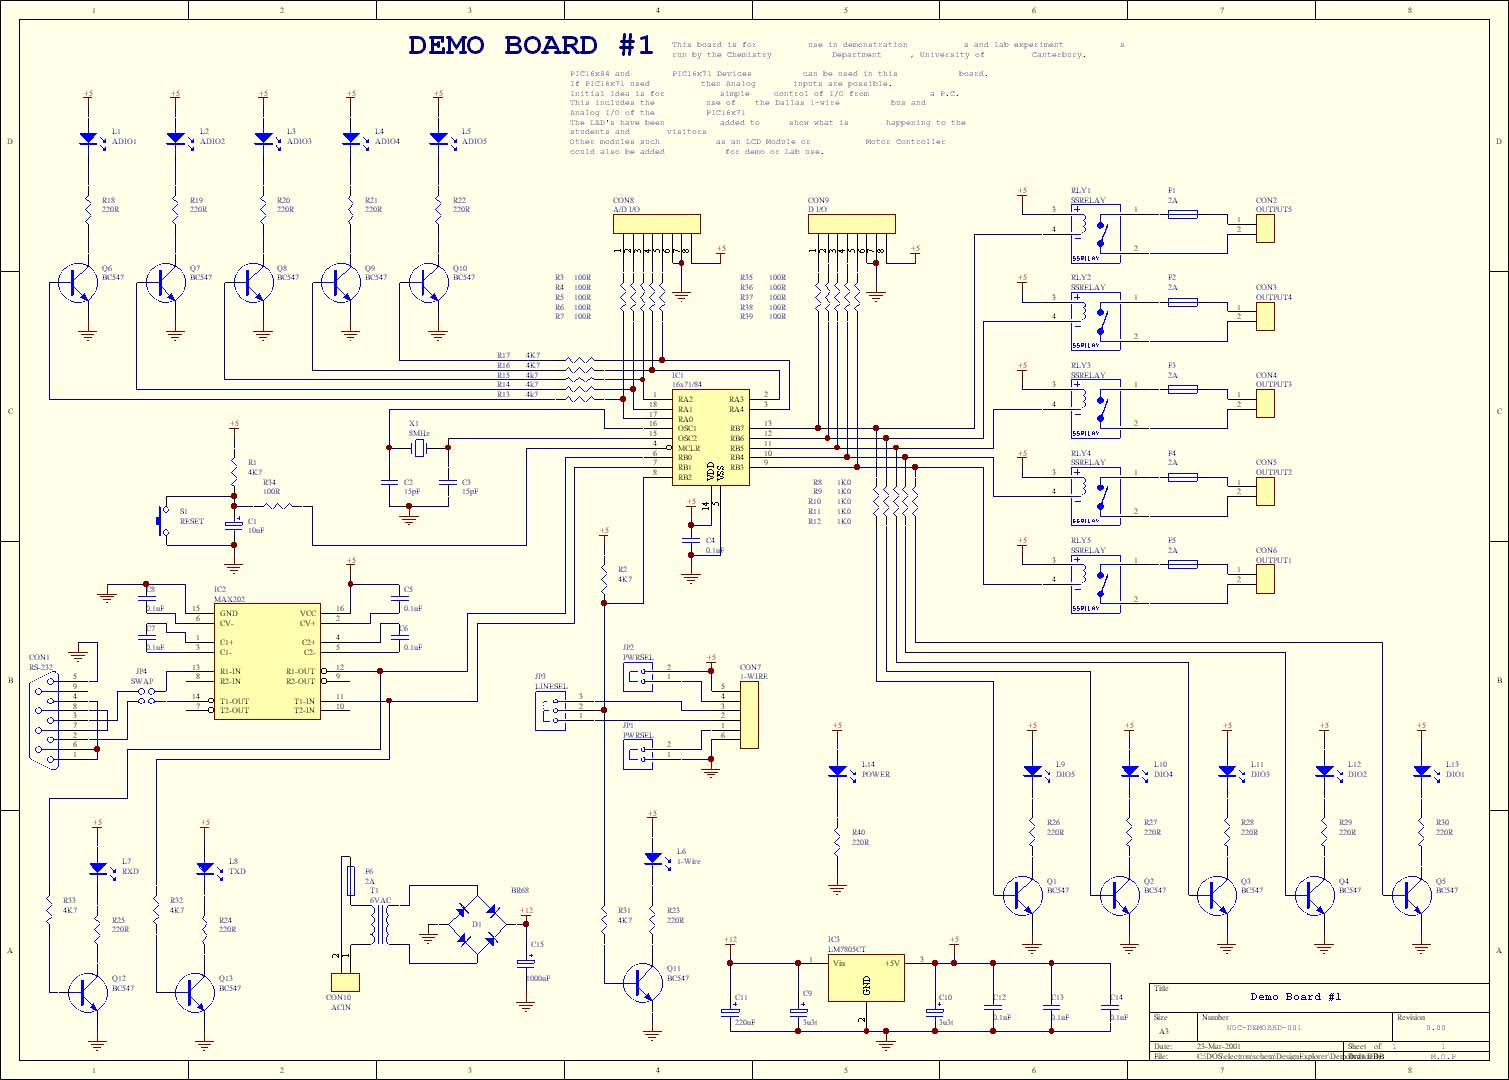 Electronic Circuit Schematics Sound Effects Generator 2 Diagrams Pic Demo Board